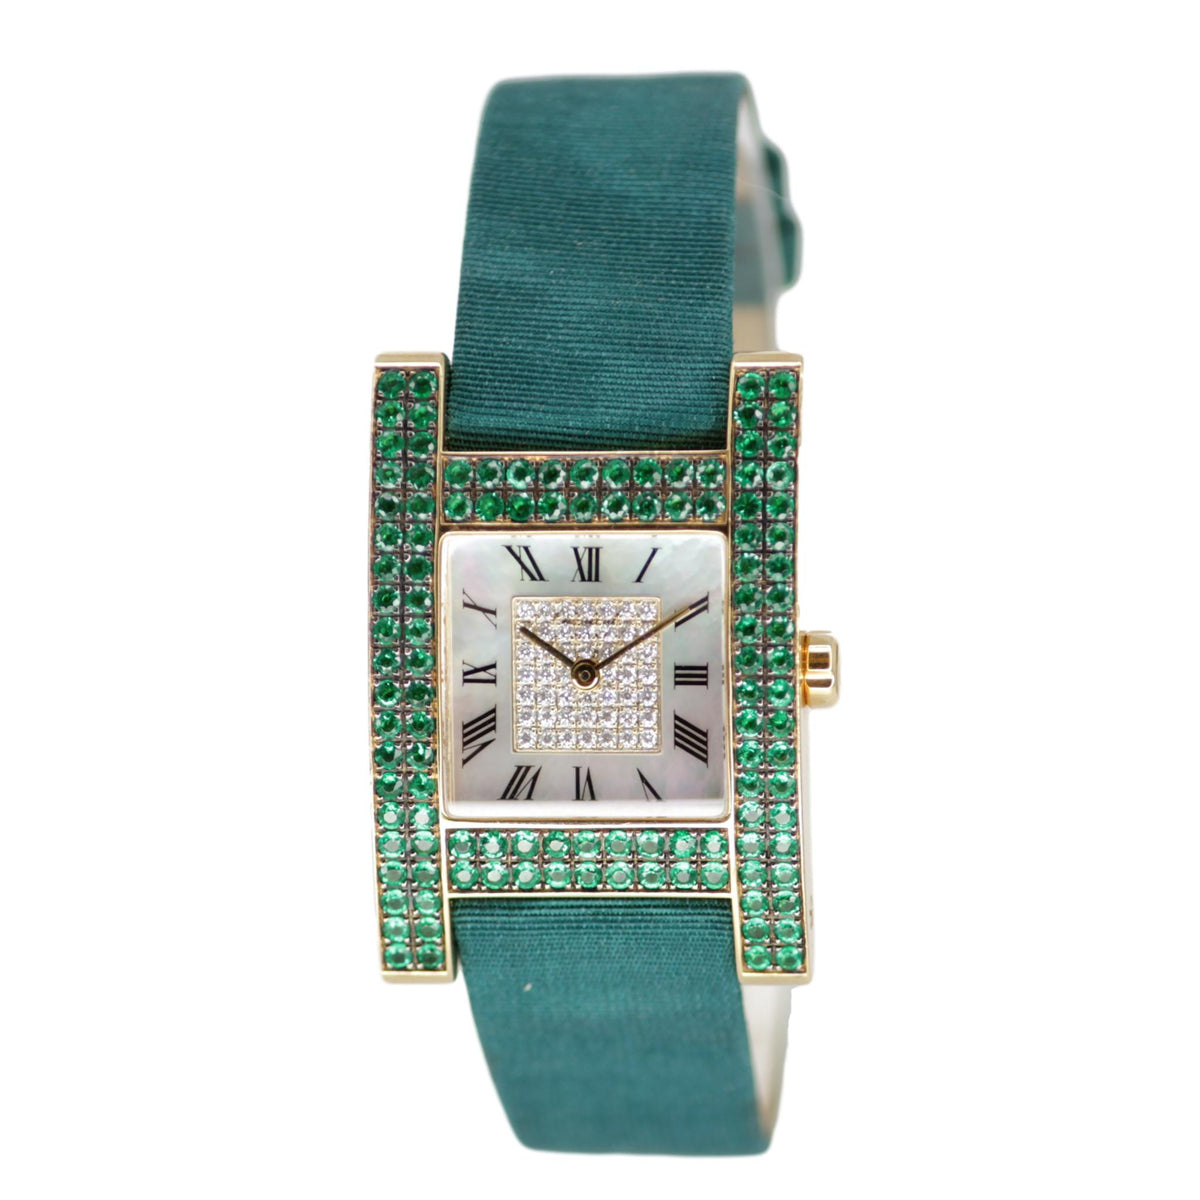 Instyle Decor Com Beverly Hills Beautiful Mother Of Pearl: Chopard Your Hour Ladies Emerald Watch Green Silk Over